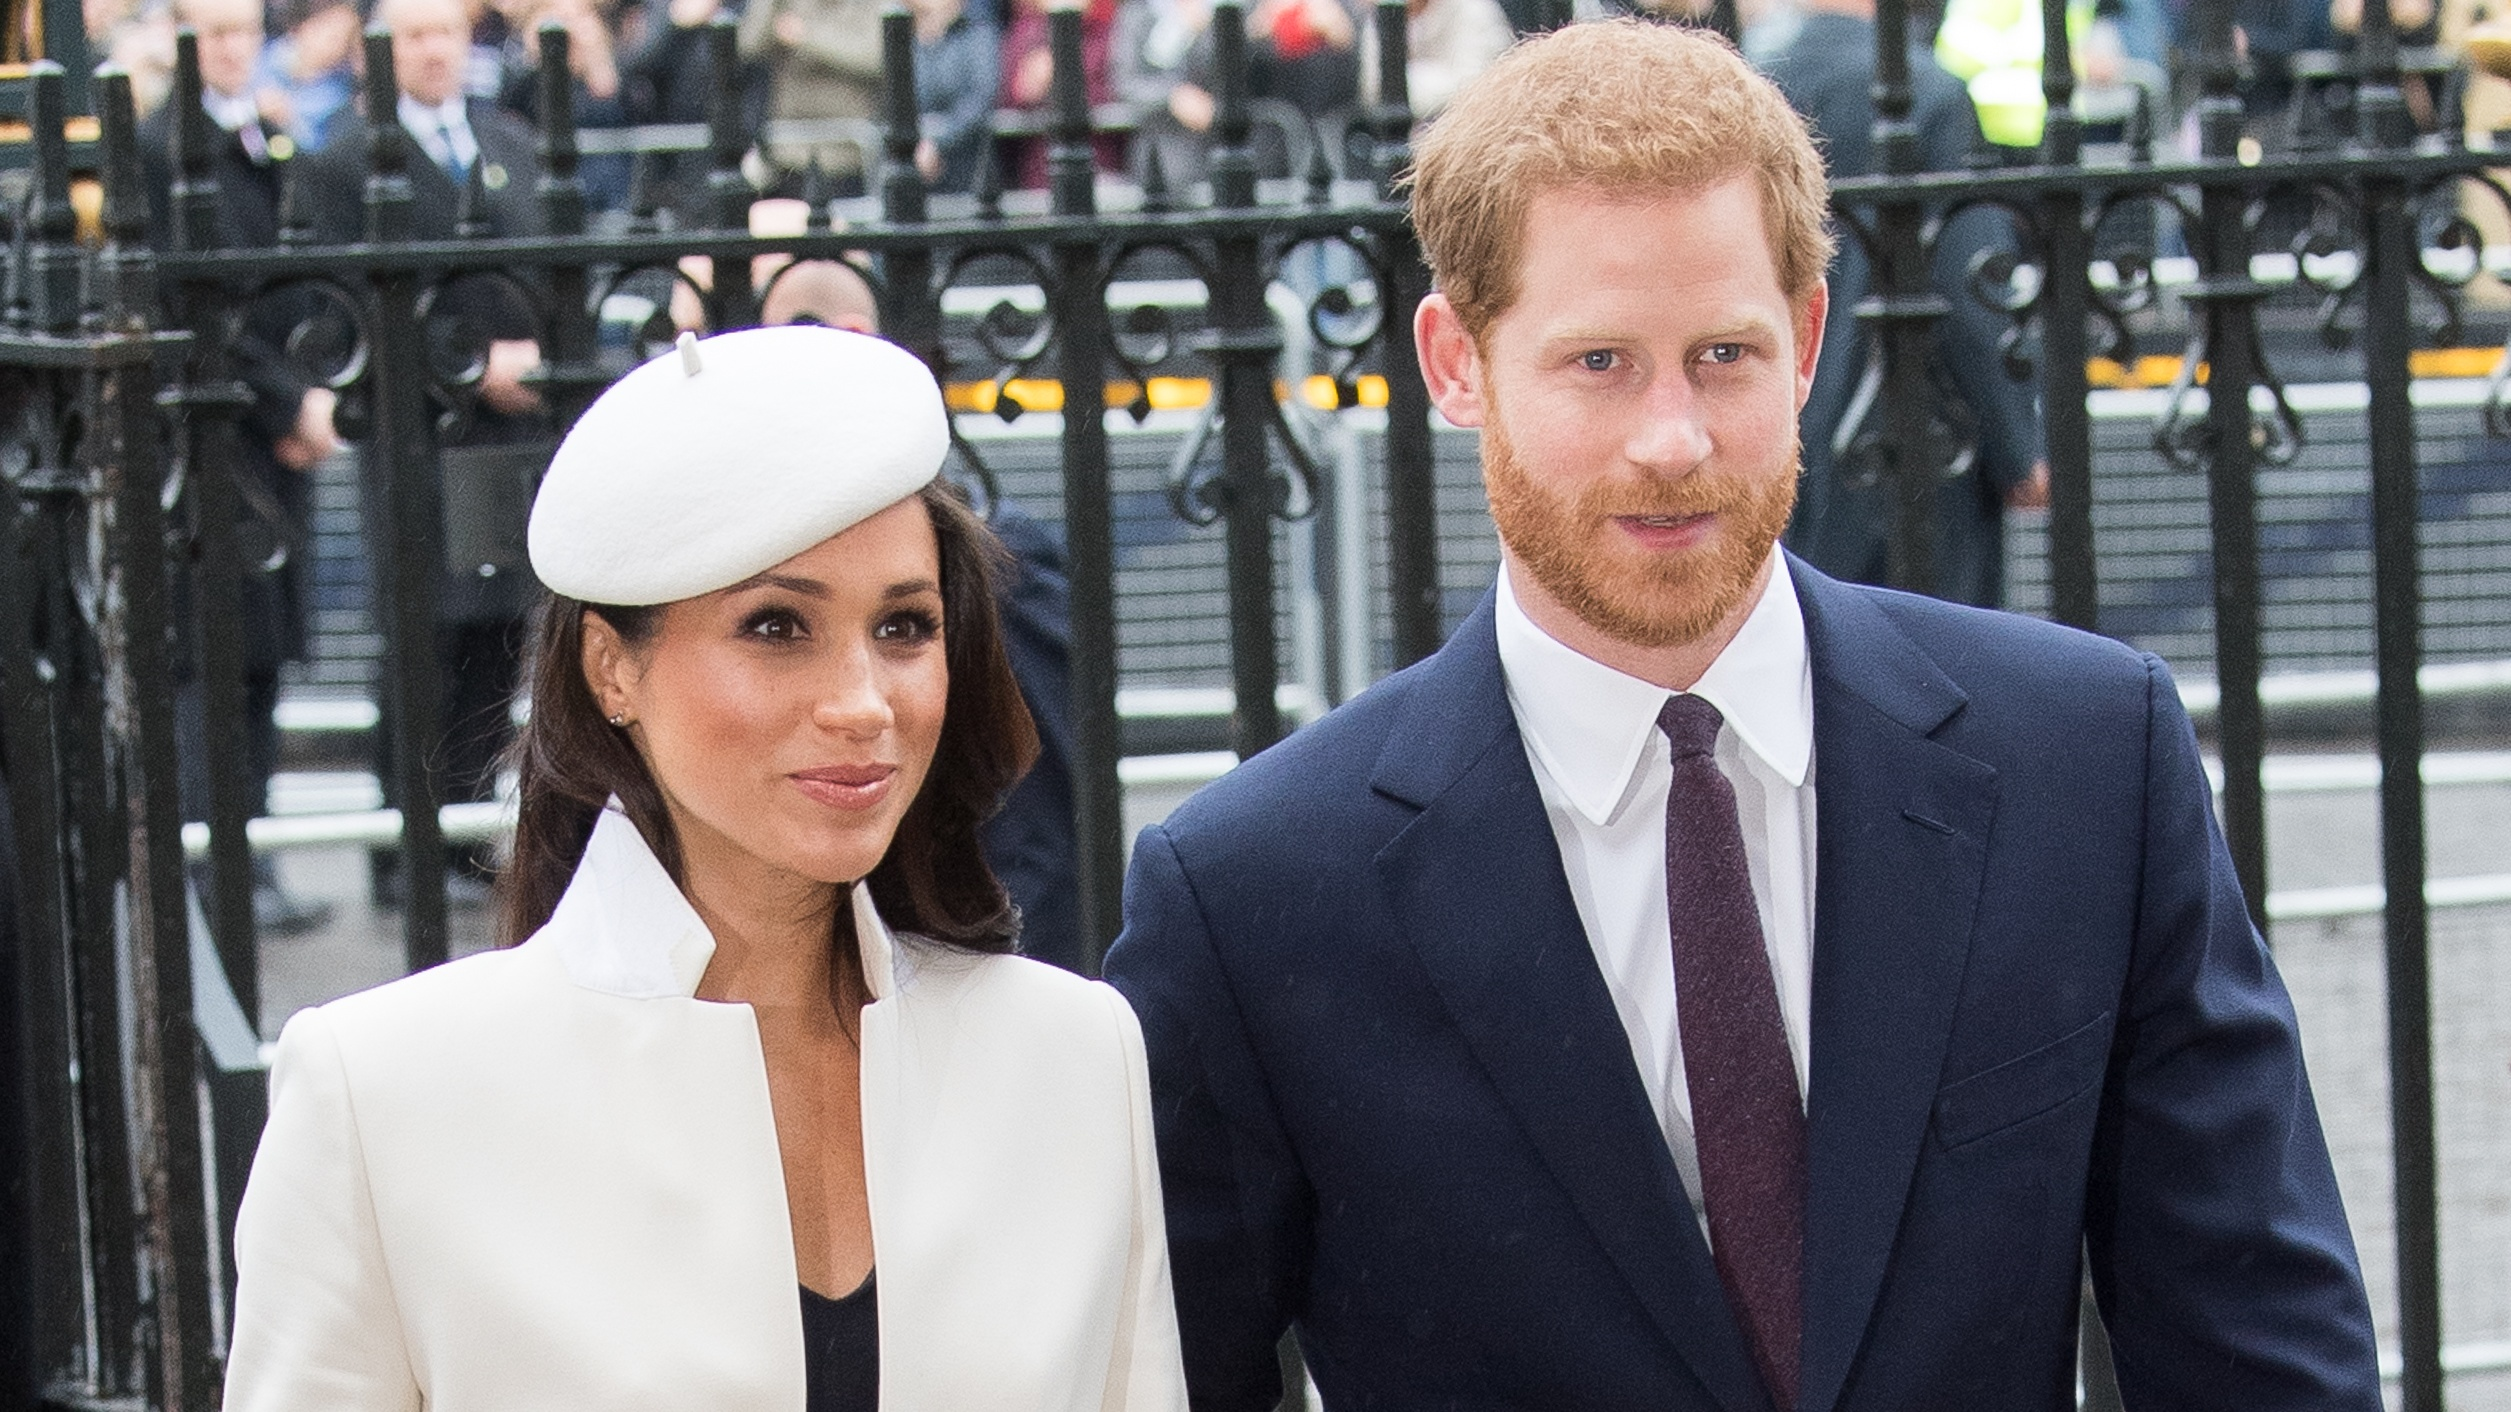 Meghan And Harry: Archie Harrison's Godparents Have Been Revealed